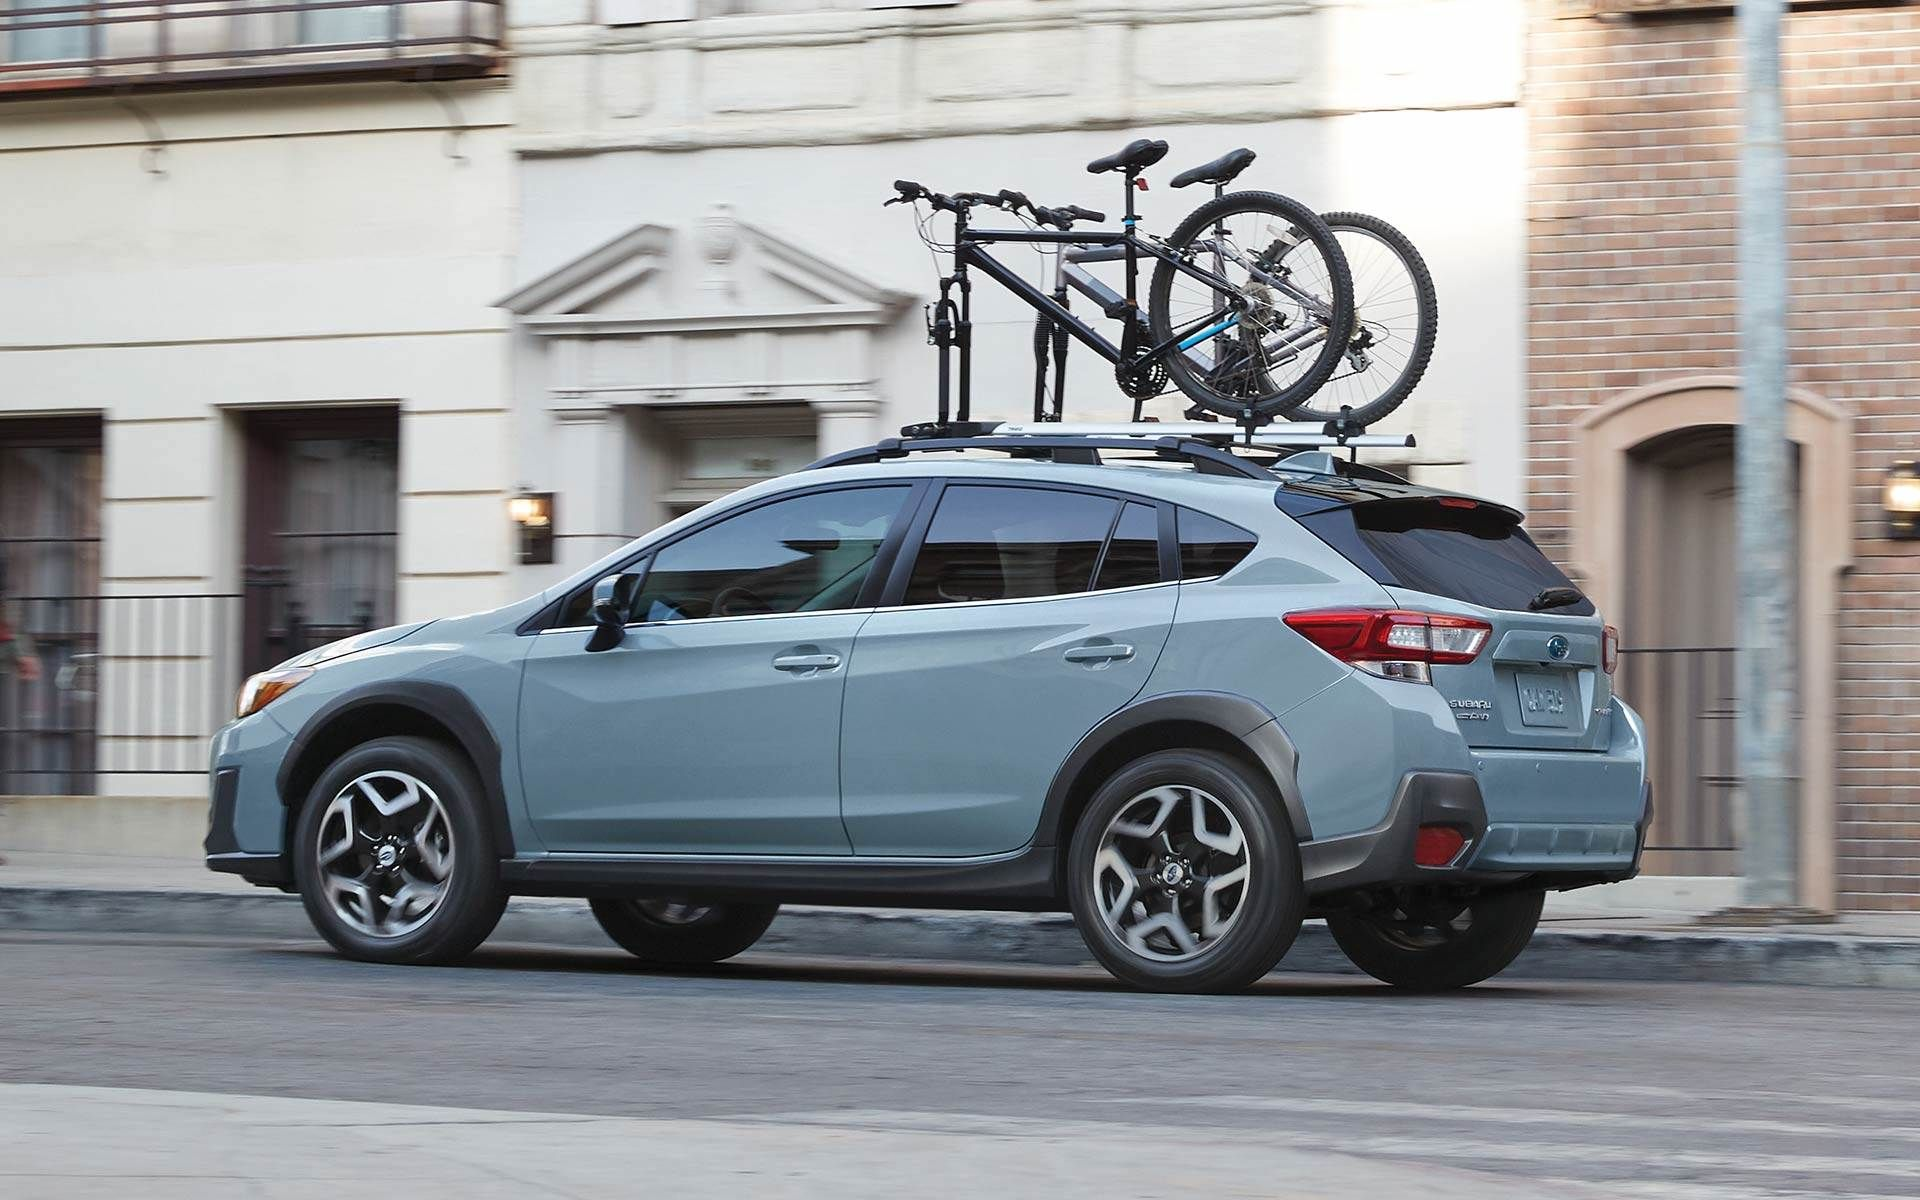 The 2020 Subaru Crosstrek Near Salem Or An Suv That Can Do It All Subaru Crosstrek Subaru Crosstrek Accessories Subaru